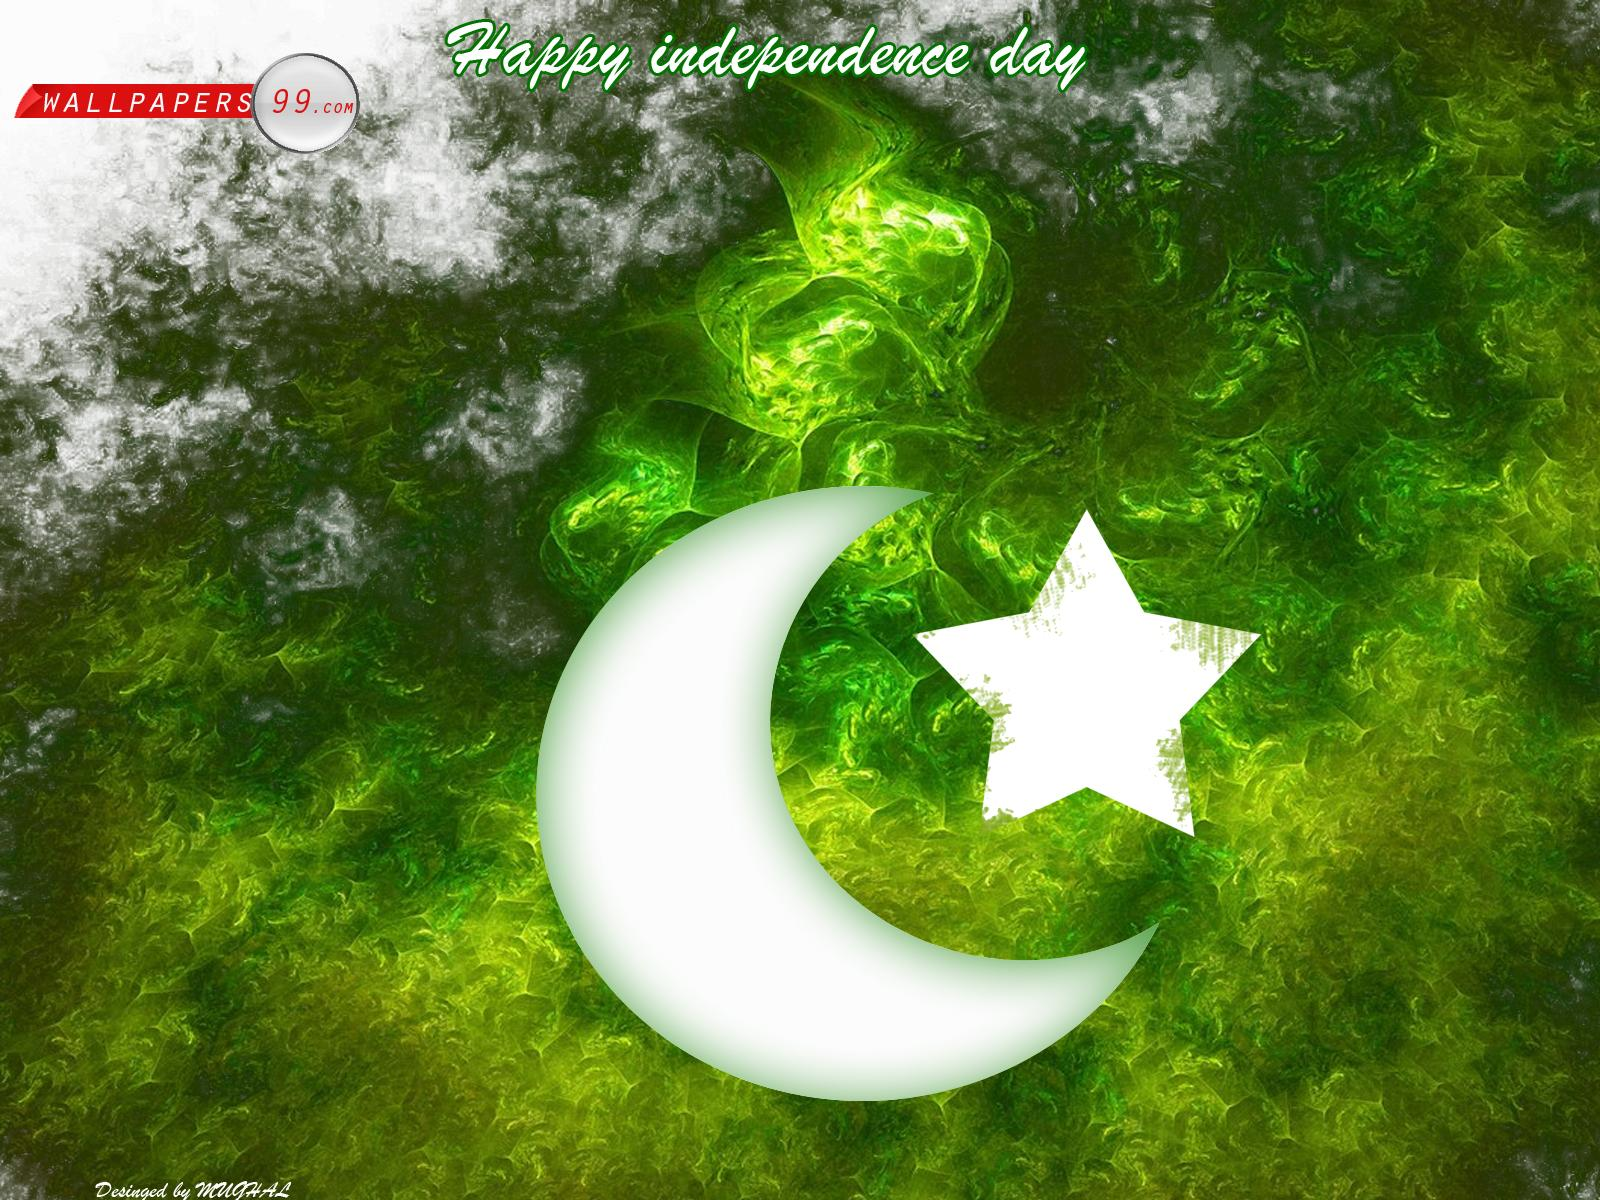 http://3.bp.blogspot.com/_HeMkQFoSCkY/TFsnBXpkrgI/AAAAAAAACfA/Cqzr8bXKw0s/s1600/14_August_independence_day_of_Pakistan_14229.jpg